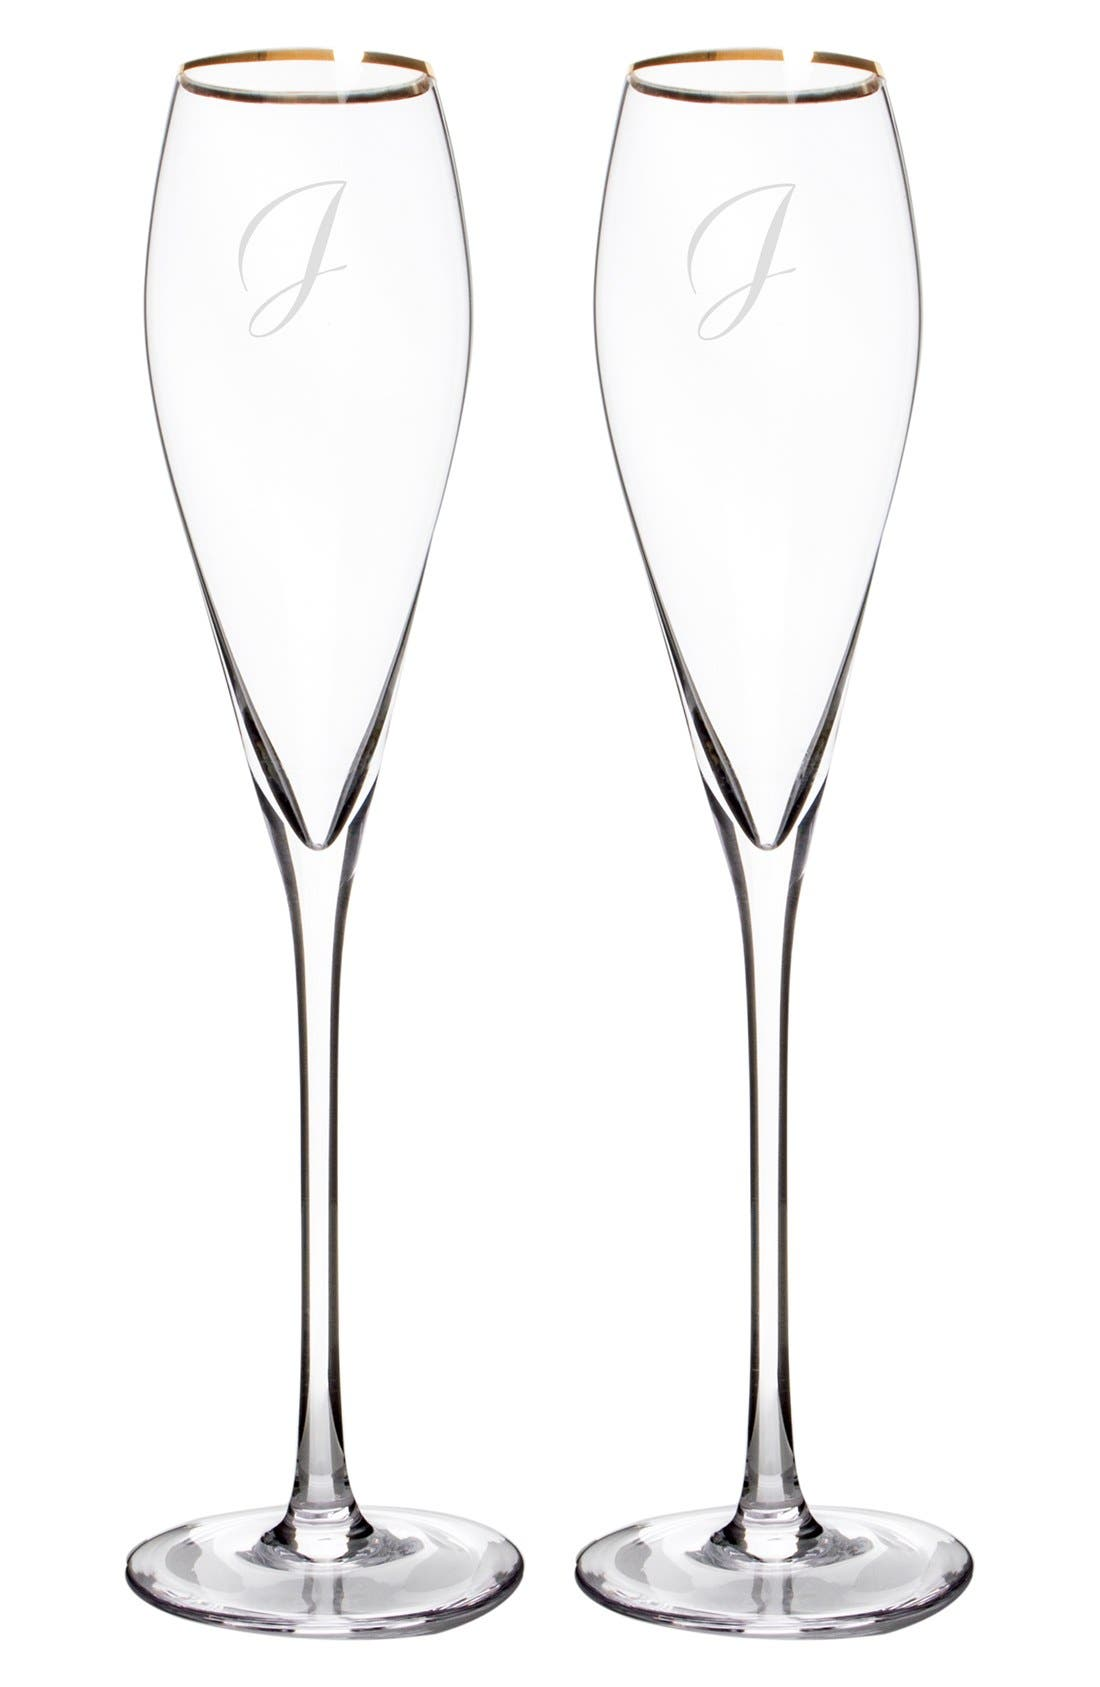 Cathy's Concepts Personalized Gold Rim Champagne Flutes (Set of 2)